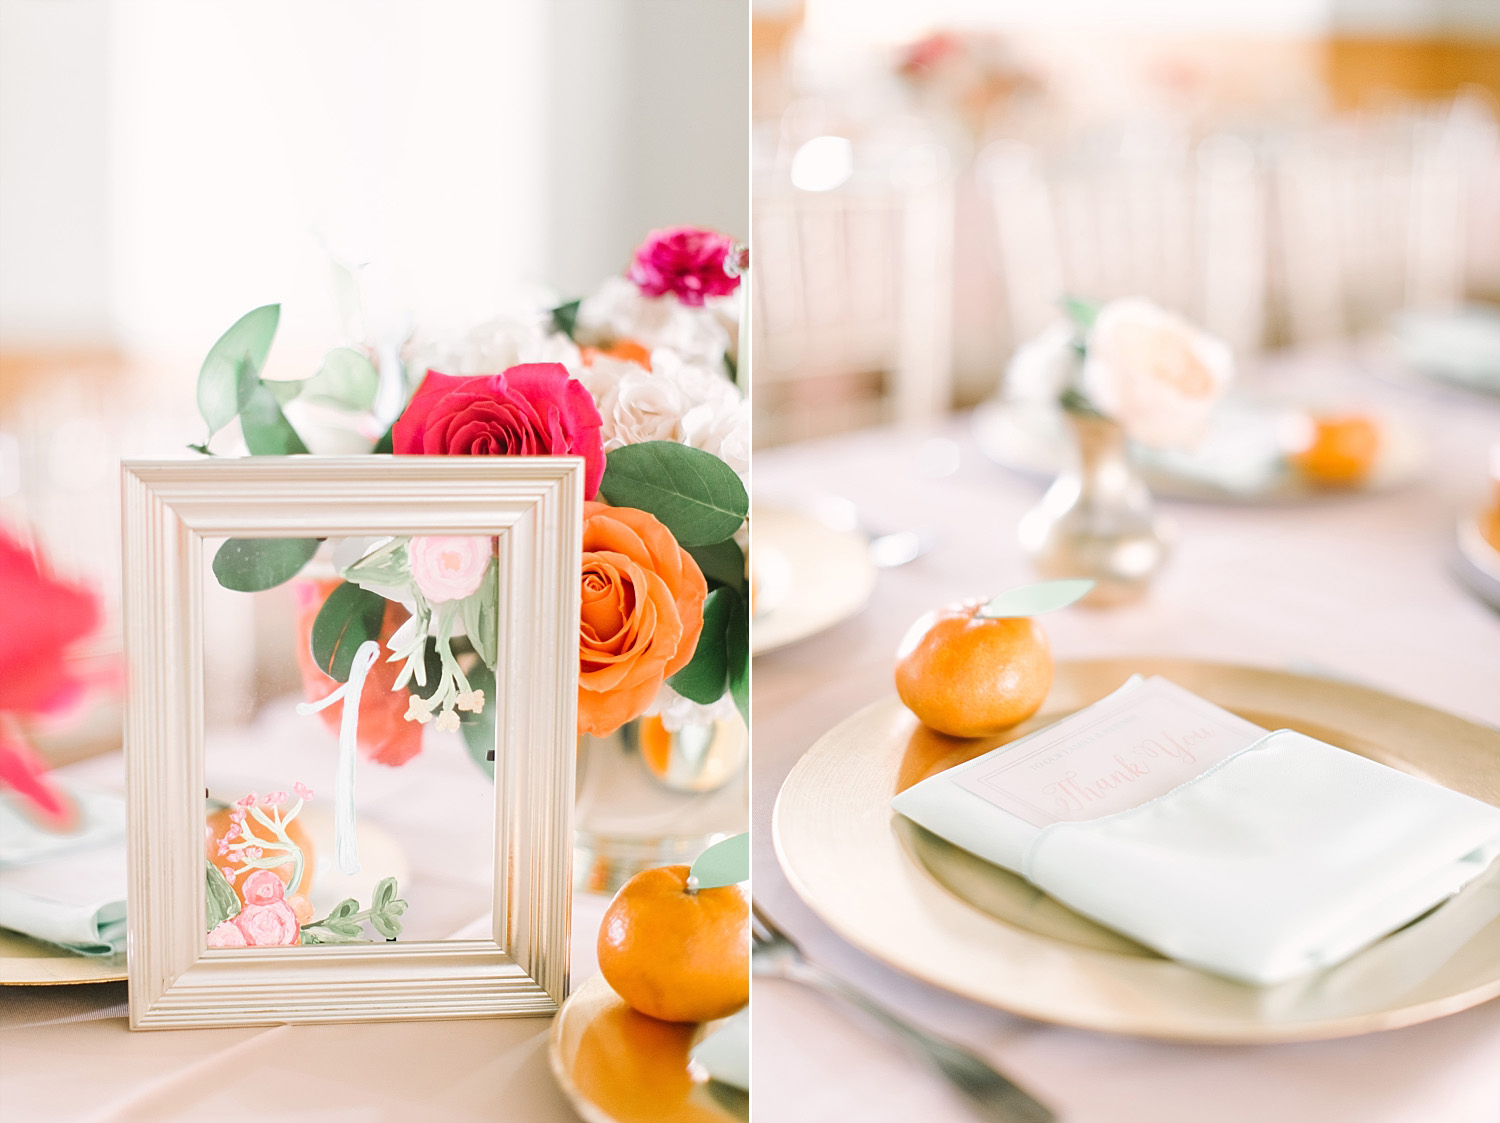 Old Red Museum wedding reception with clementines at the place setting